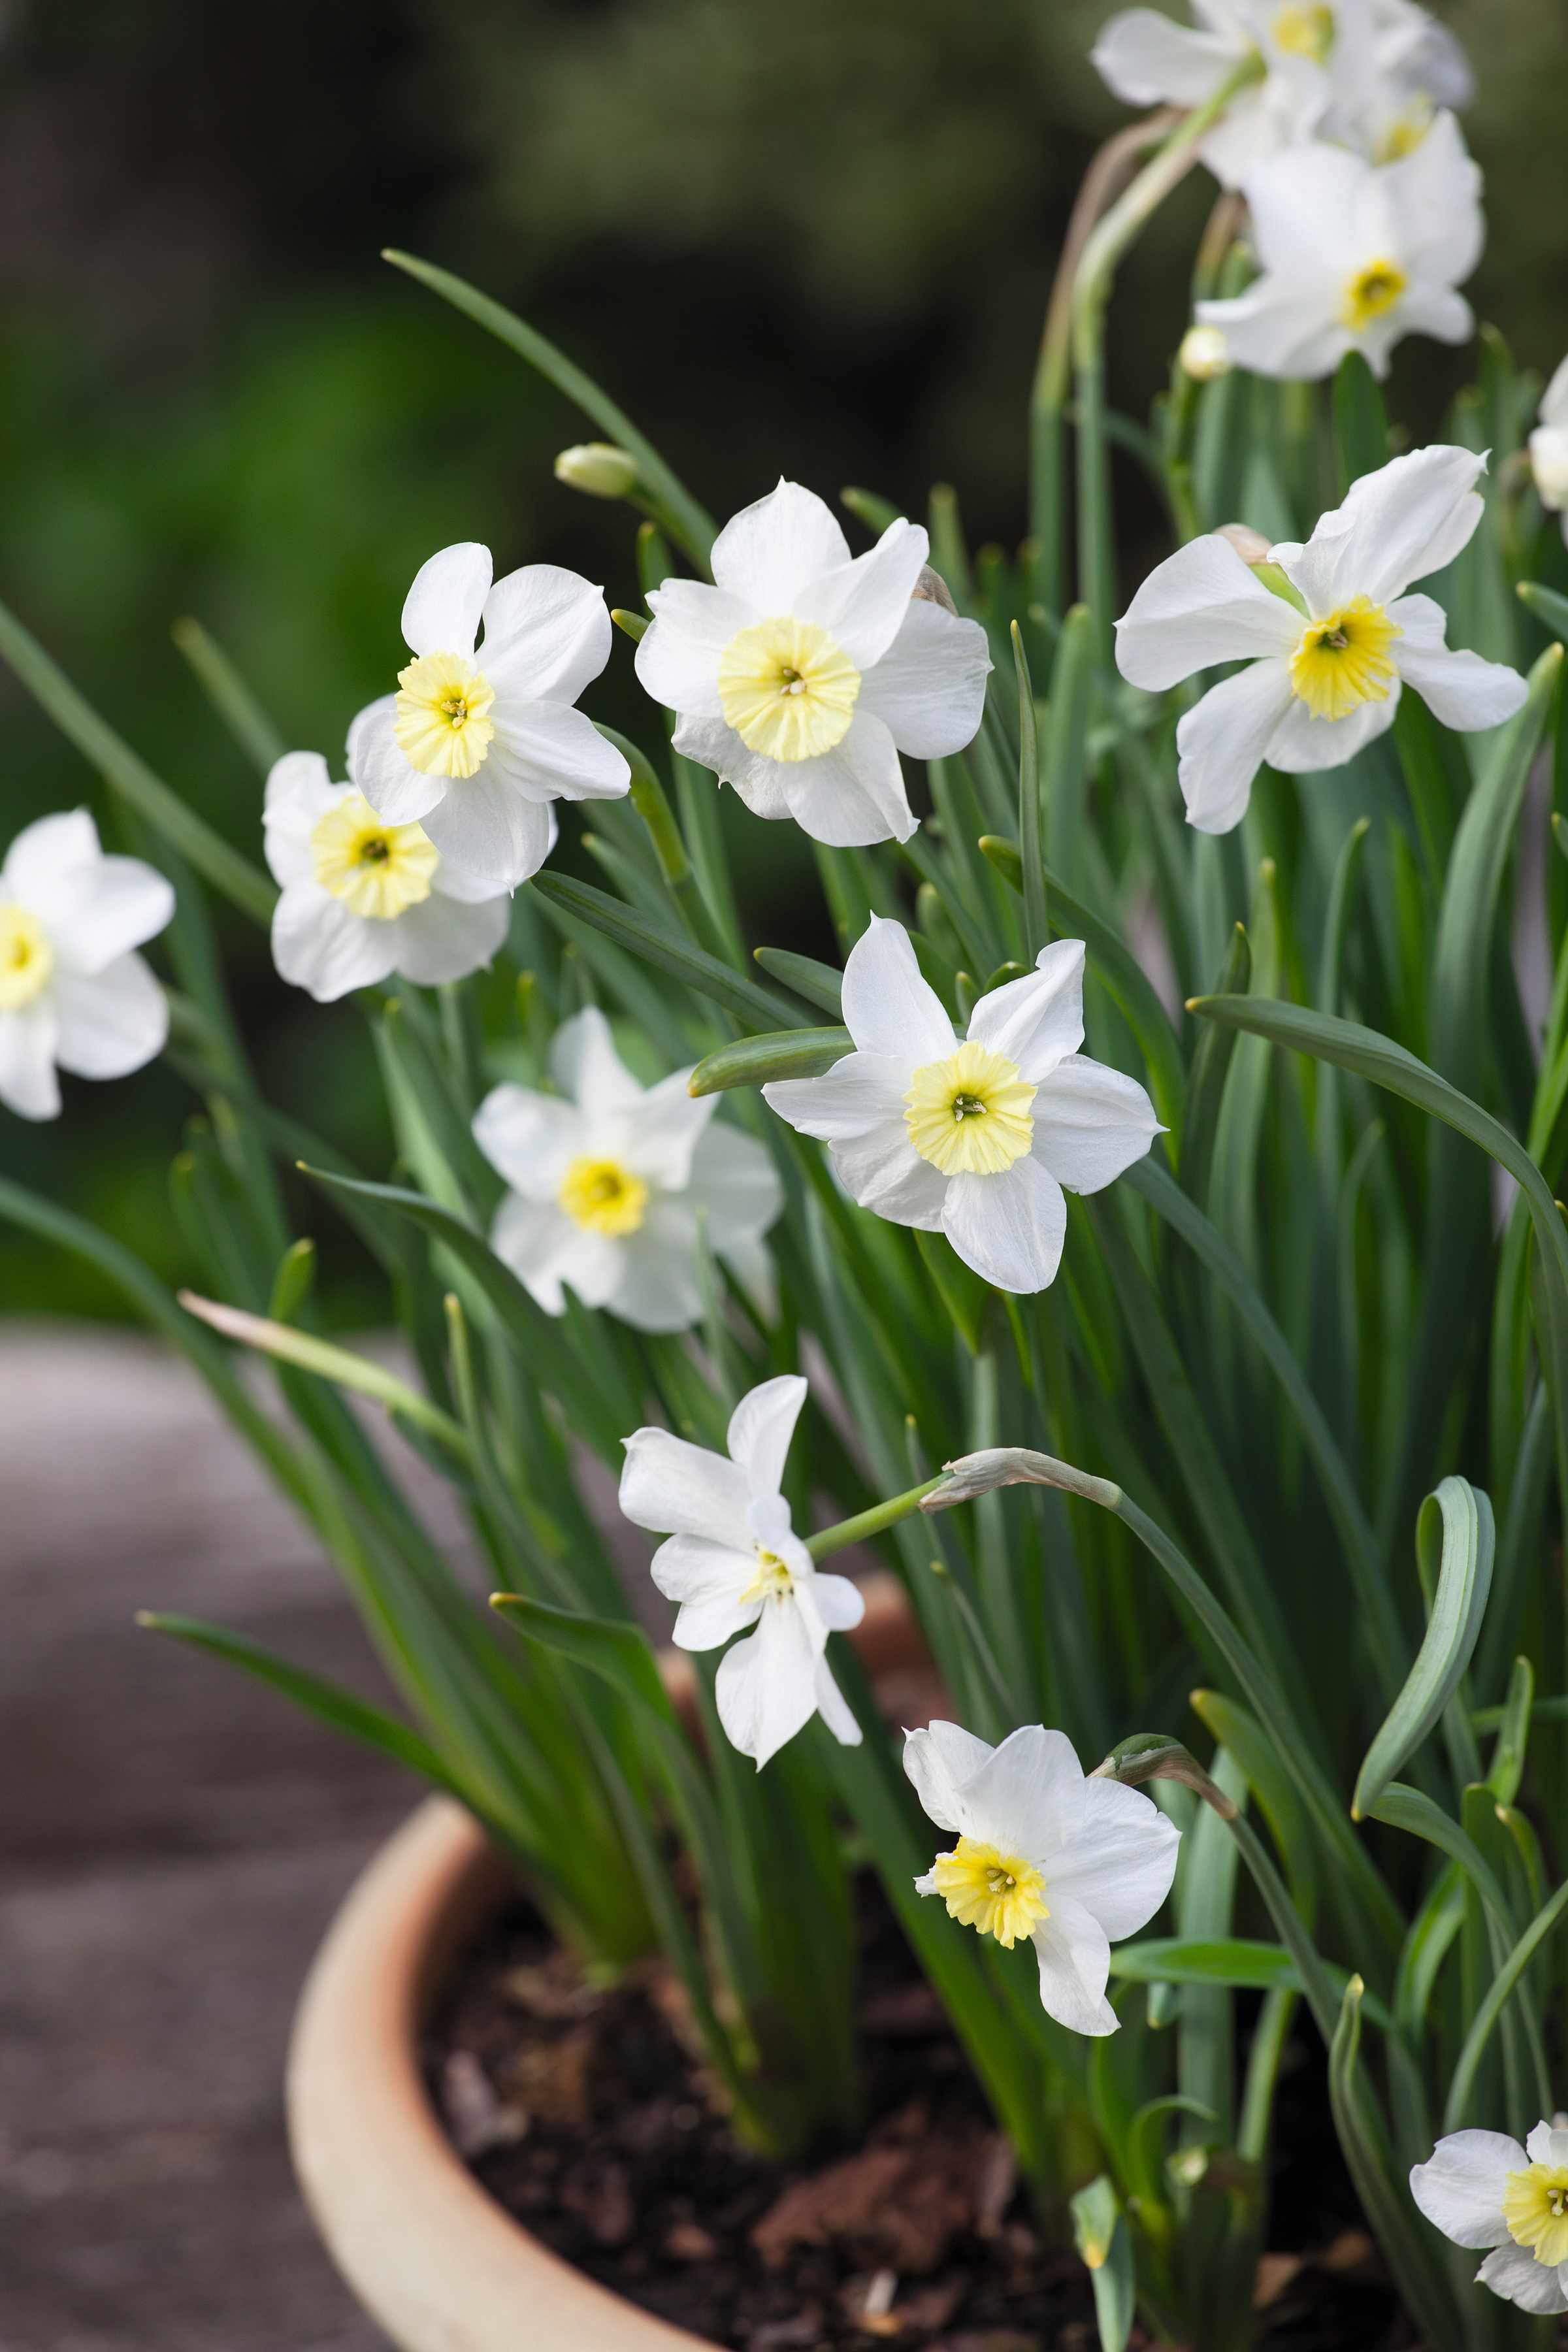 Narcissus 'Segovia' growing in a pot at Mary Keen's garden, The Old Rectory